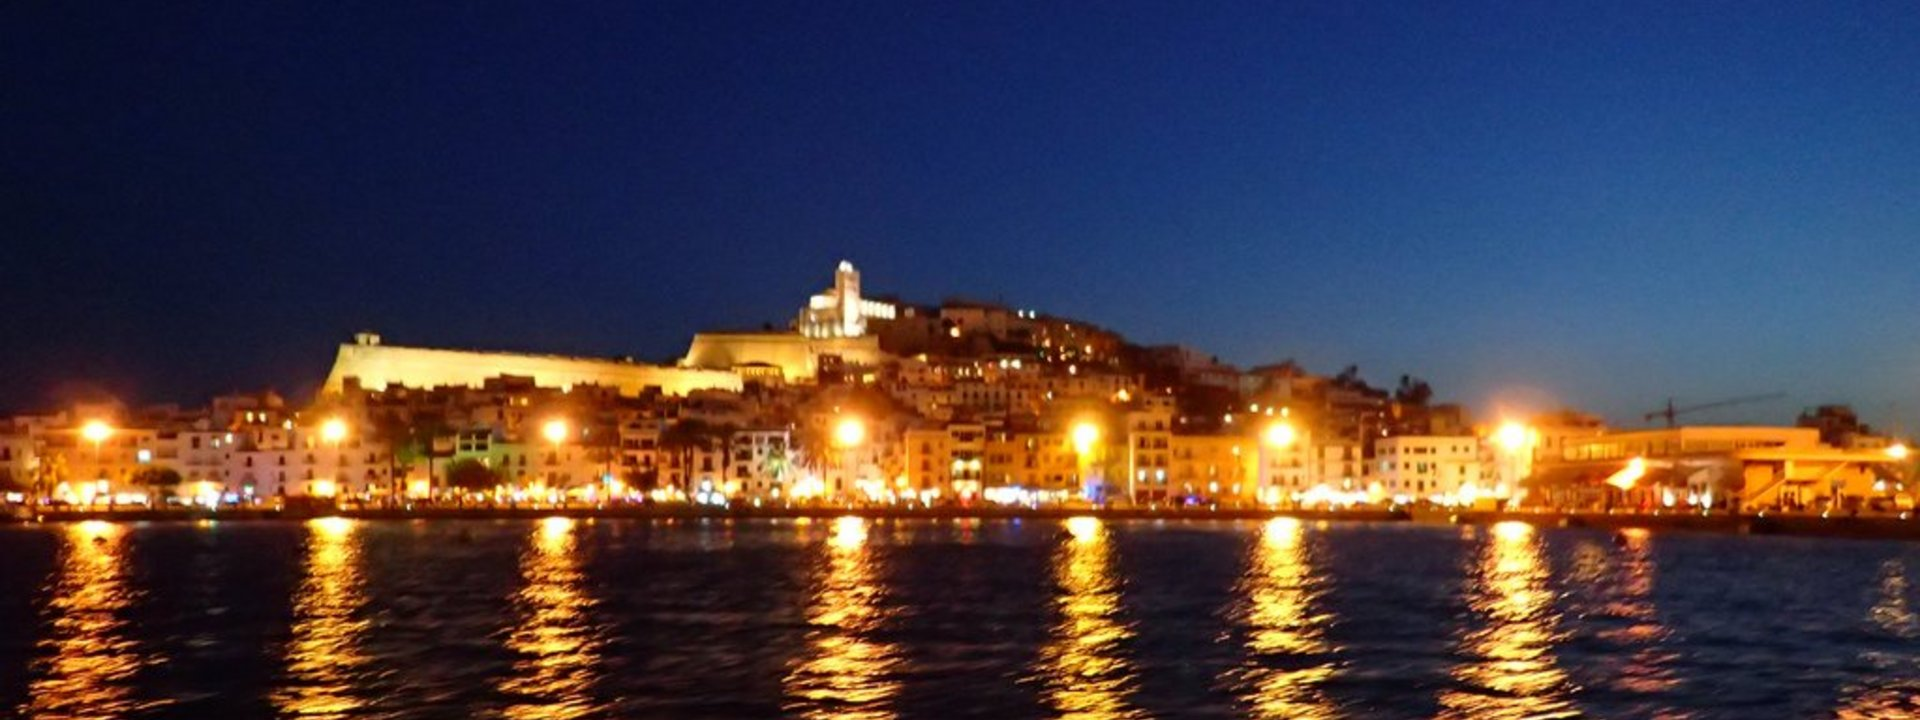 Ibiza Stadt by night